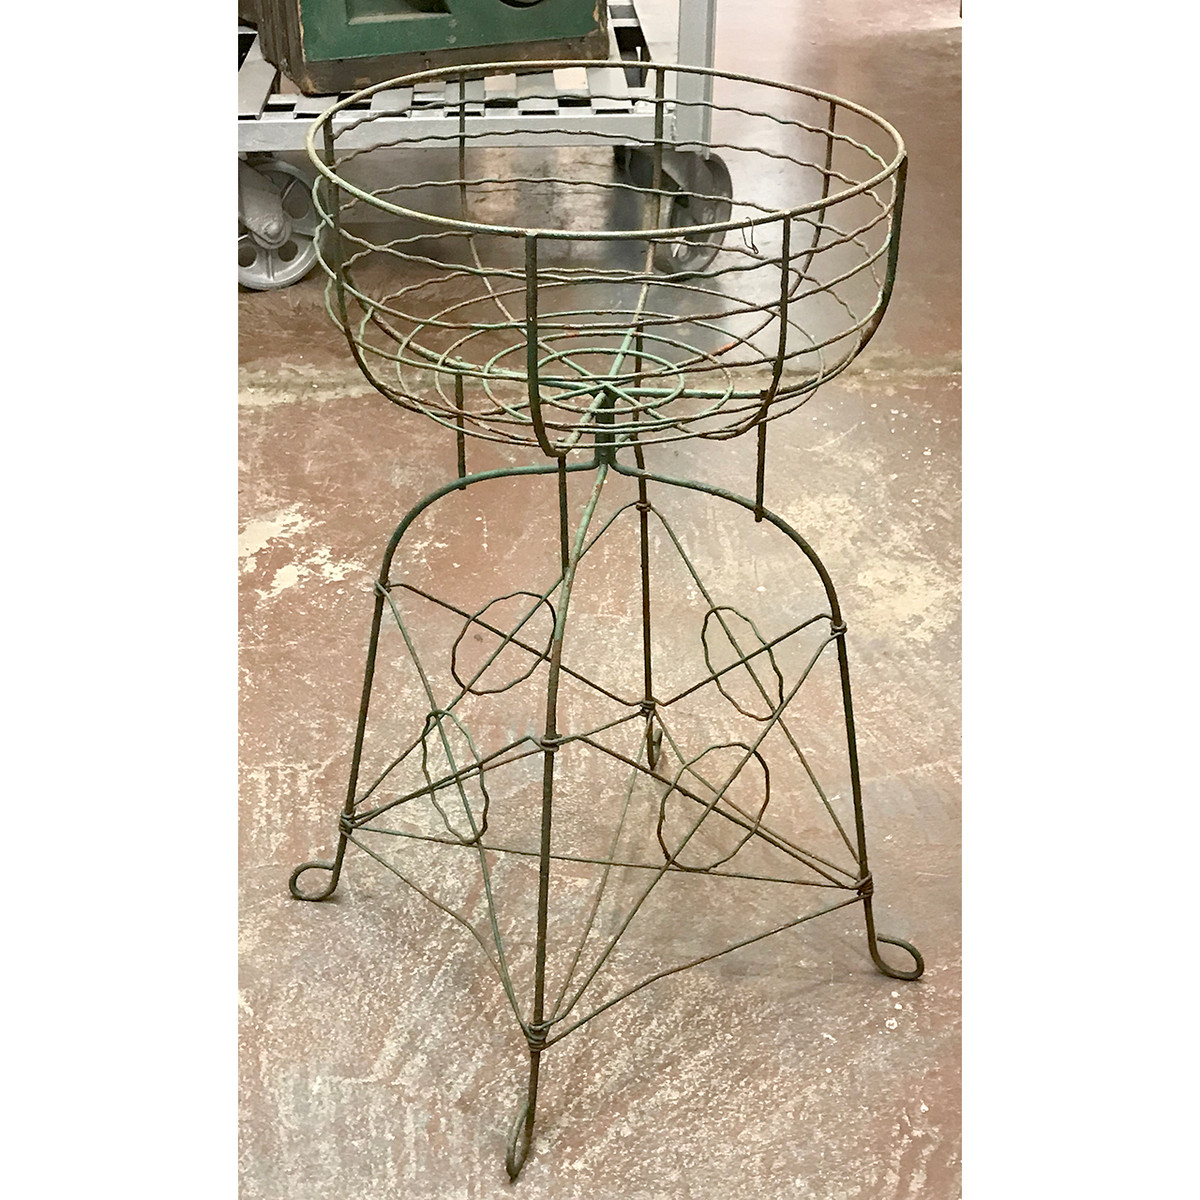 A18090 - Antique Wire Flower Basket